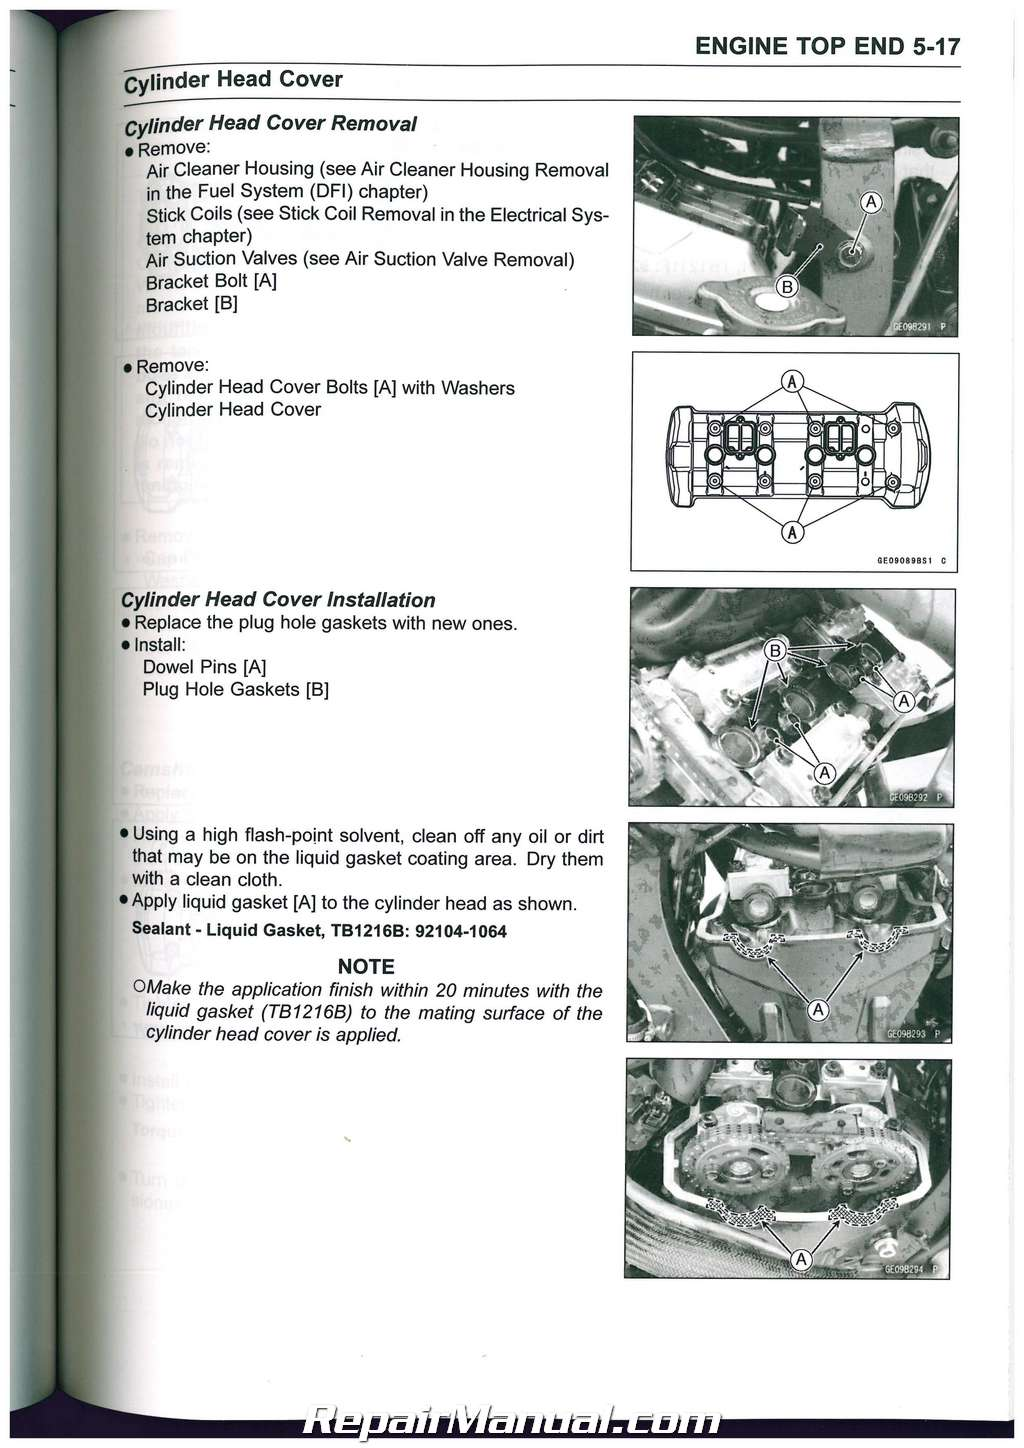 Used 2014 2016 Kawasaki Z1000 Zr1000 Abs Motorcycle Service Manual 2006 Parts Diagram Wiring Schematic